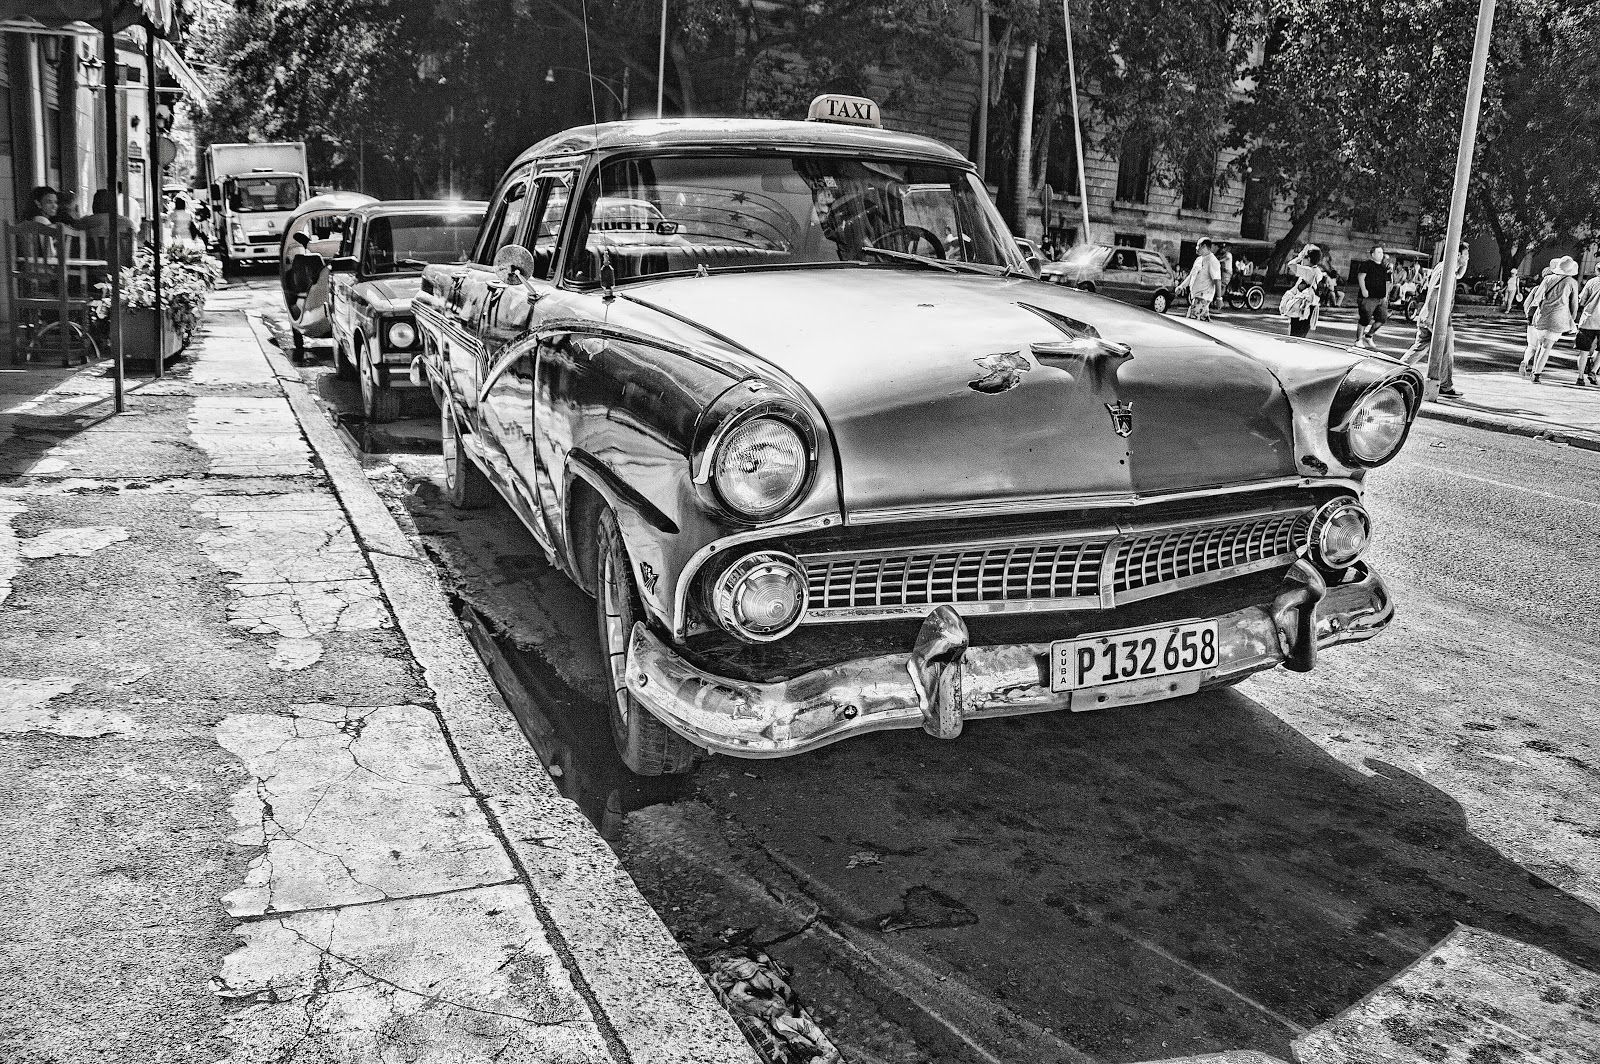 grayscale-photography-of-vintage-car-beside-pavement-pictures